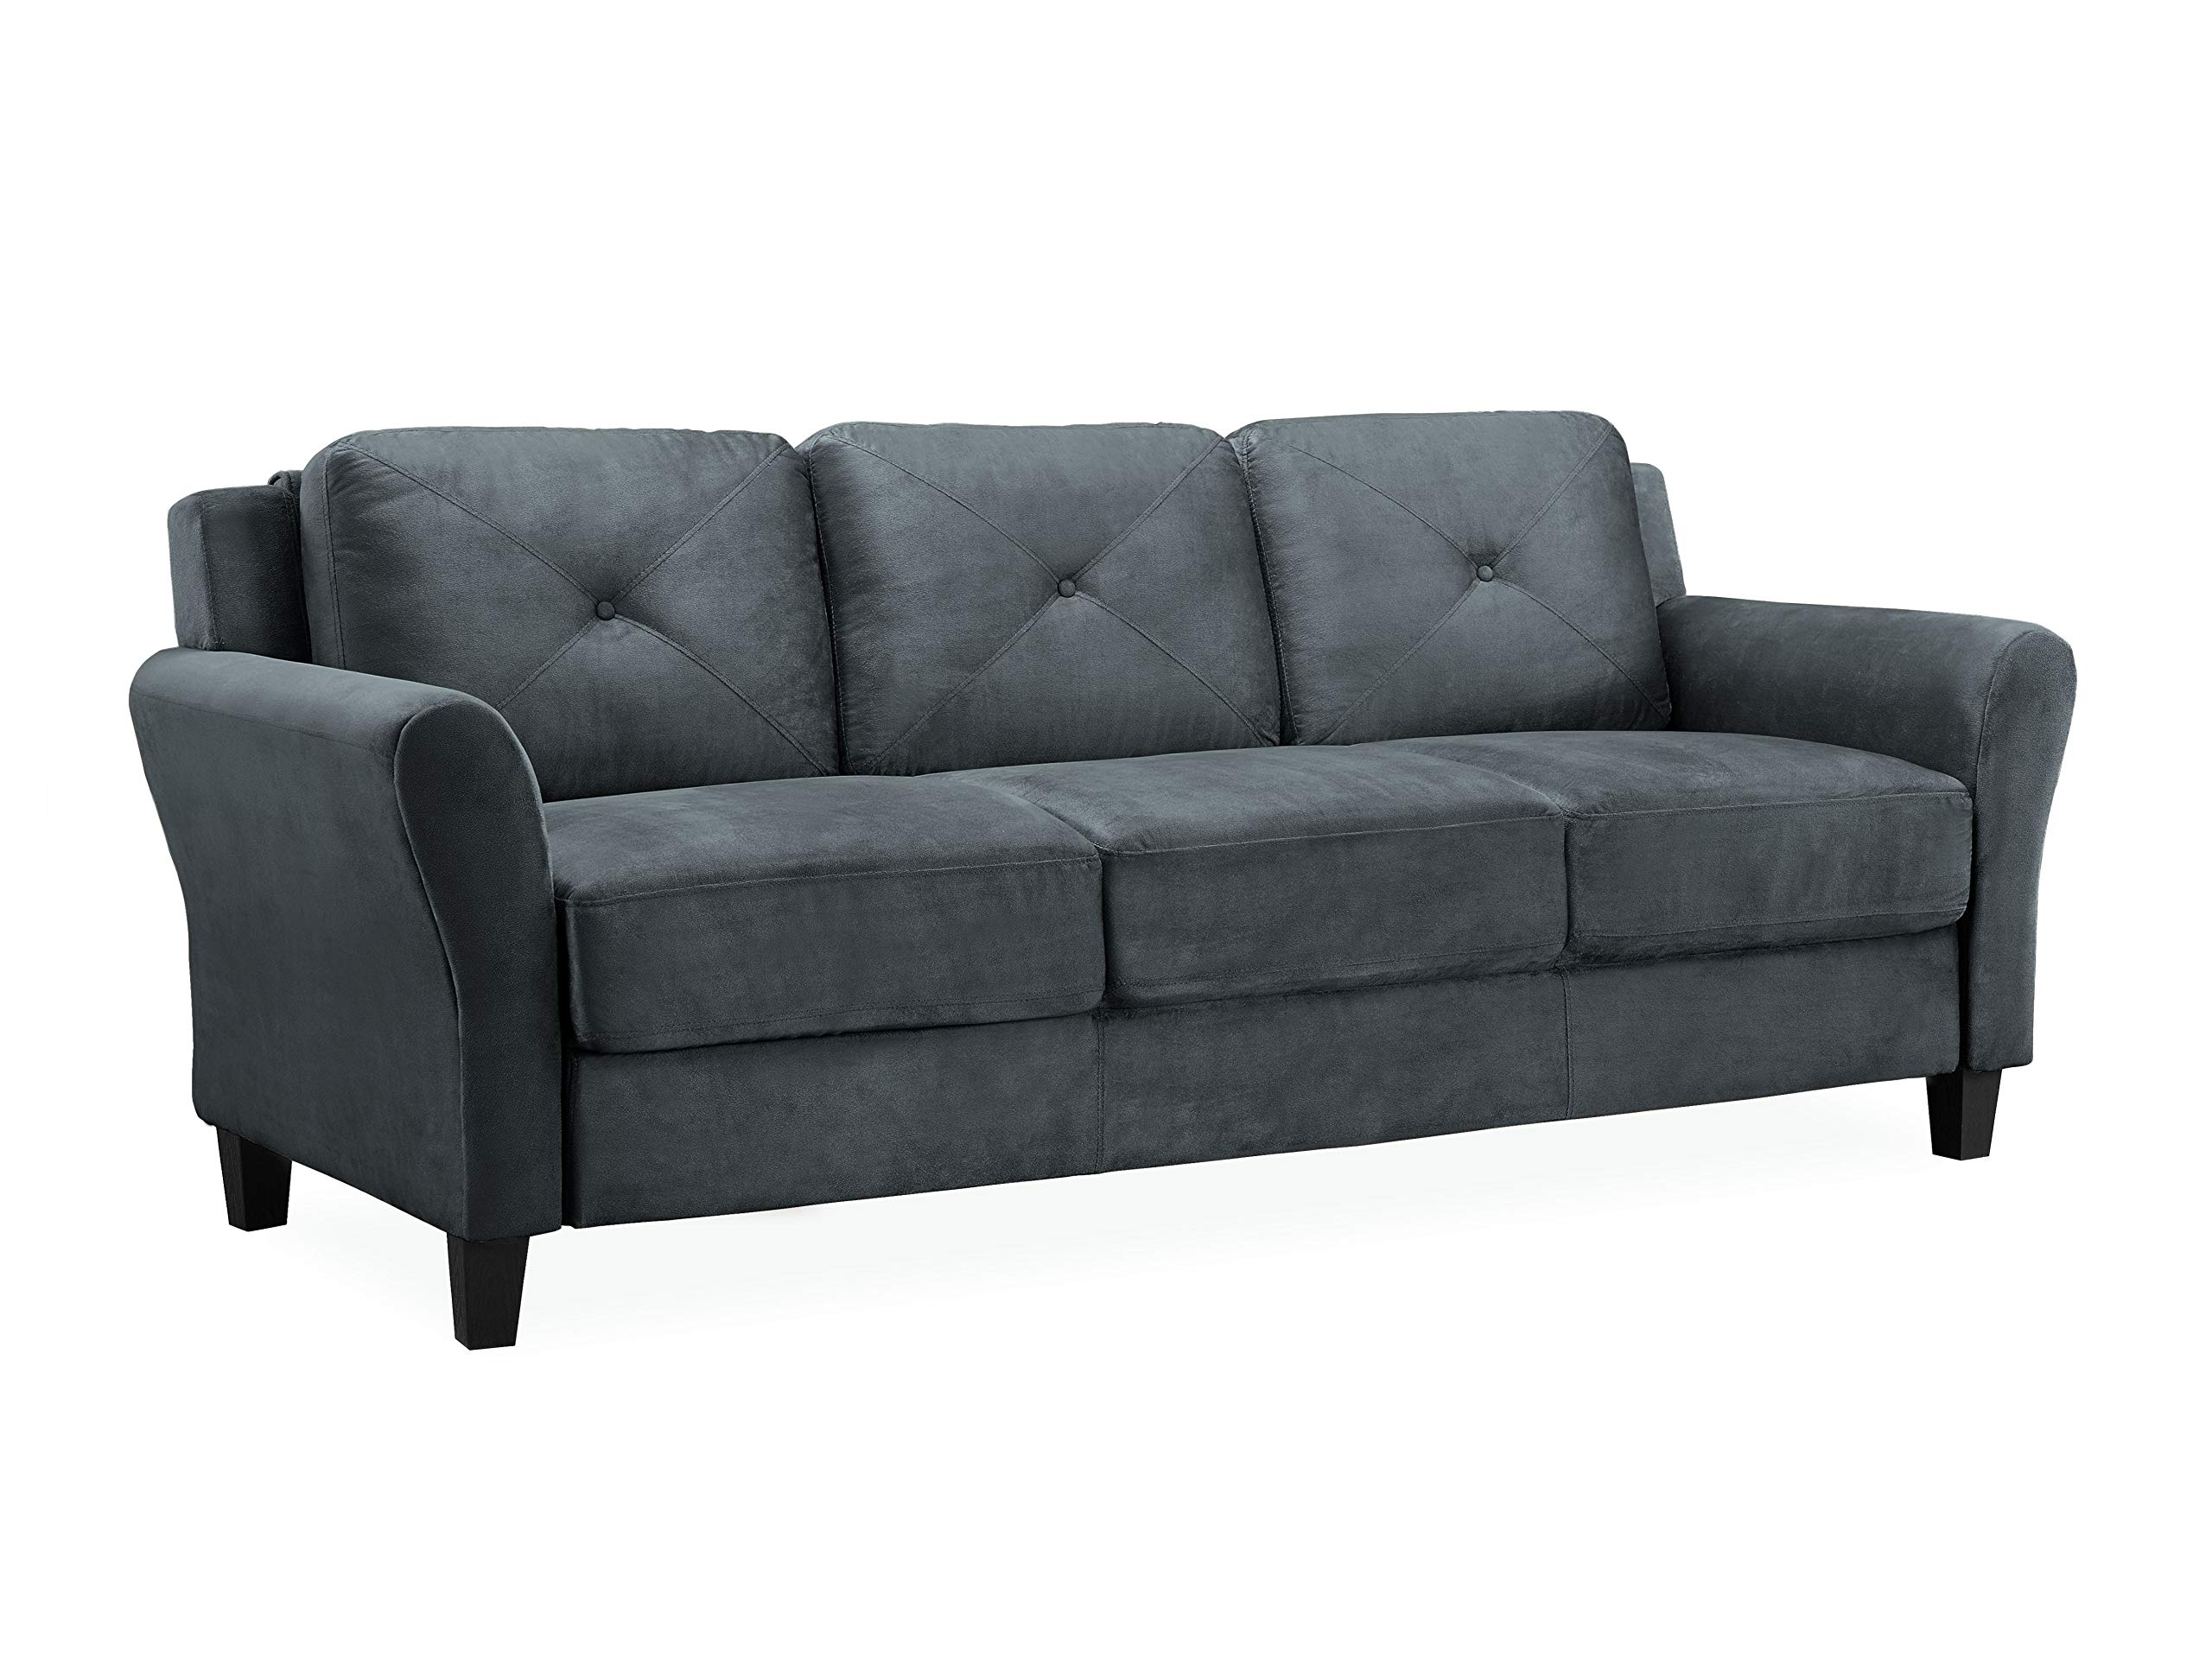 Lifestyle Solutions KD Rolled-Arm Collection Grayson Micro-Fabric Sofa 80.3'' x 32'' x 32.68'' Dark Gray